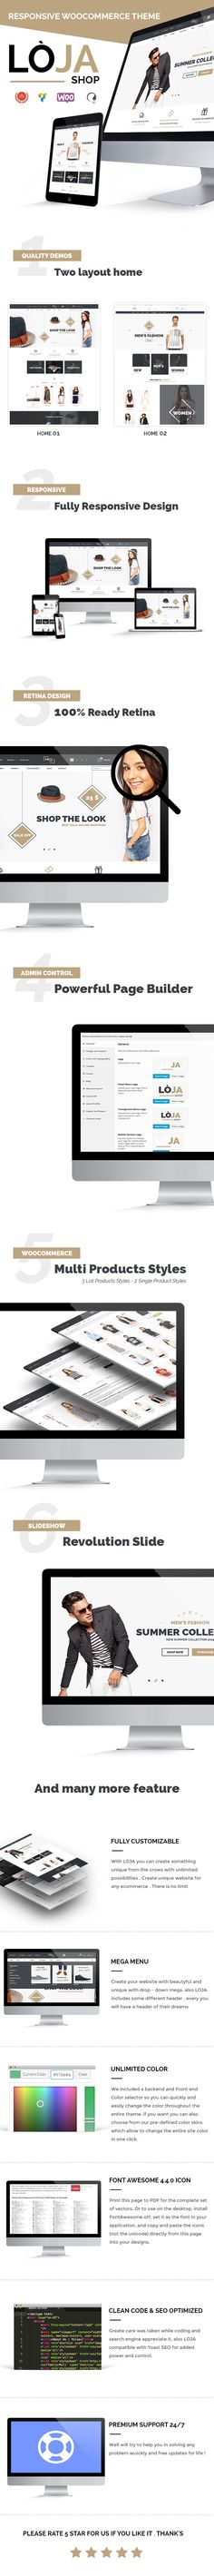 100% RETINA READY TWO LAYOUT HOME POWERFULL PAGE BUILDER MULTIPRODUCTS STYLES REVOLUTION SLIDER FULLY RESPONSIVE DESIGN  MEGA MENU  UNLIMITED COLORS FONT AWESOME 4.4.0 CLEAN CODE & SEO OPTIMIZED PREMIUM SUPPORT